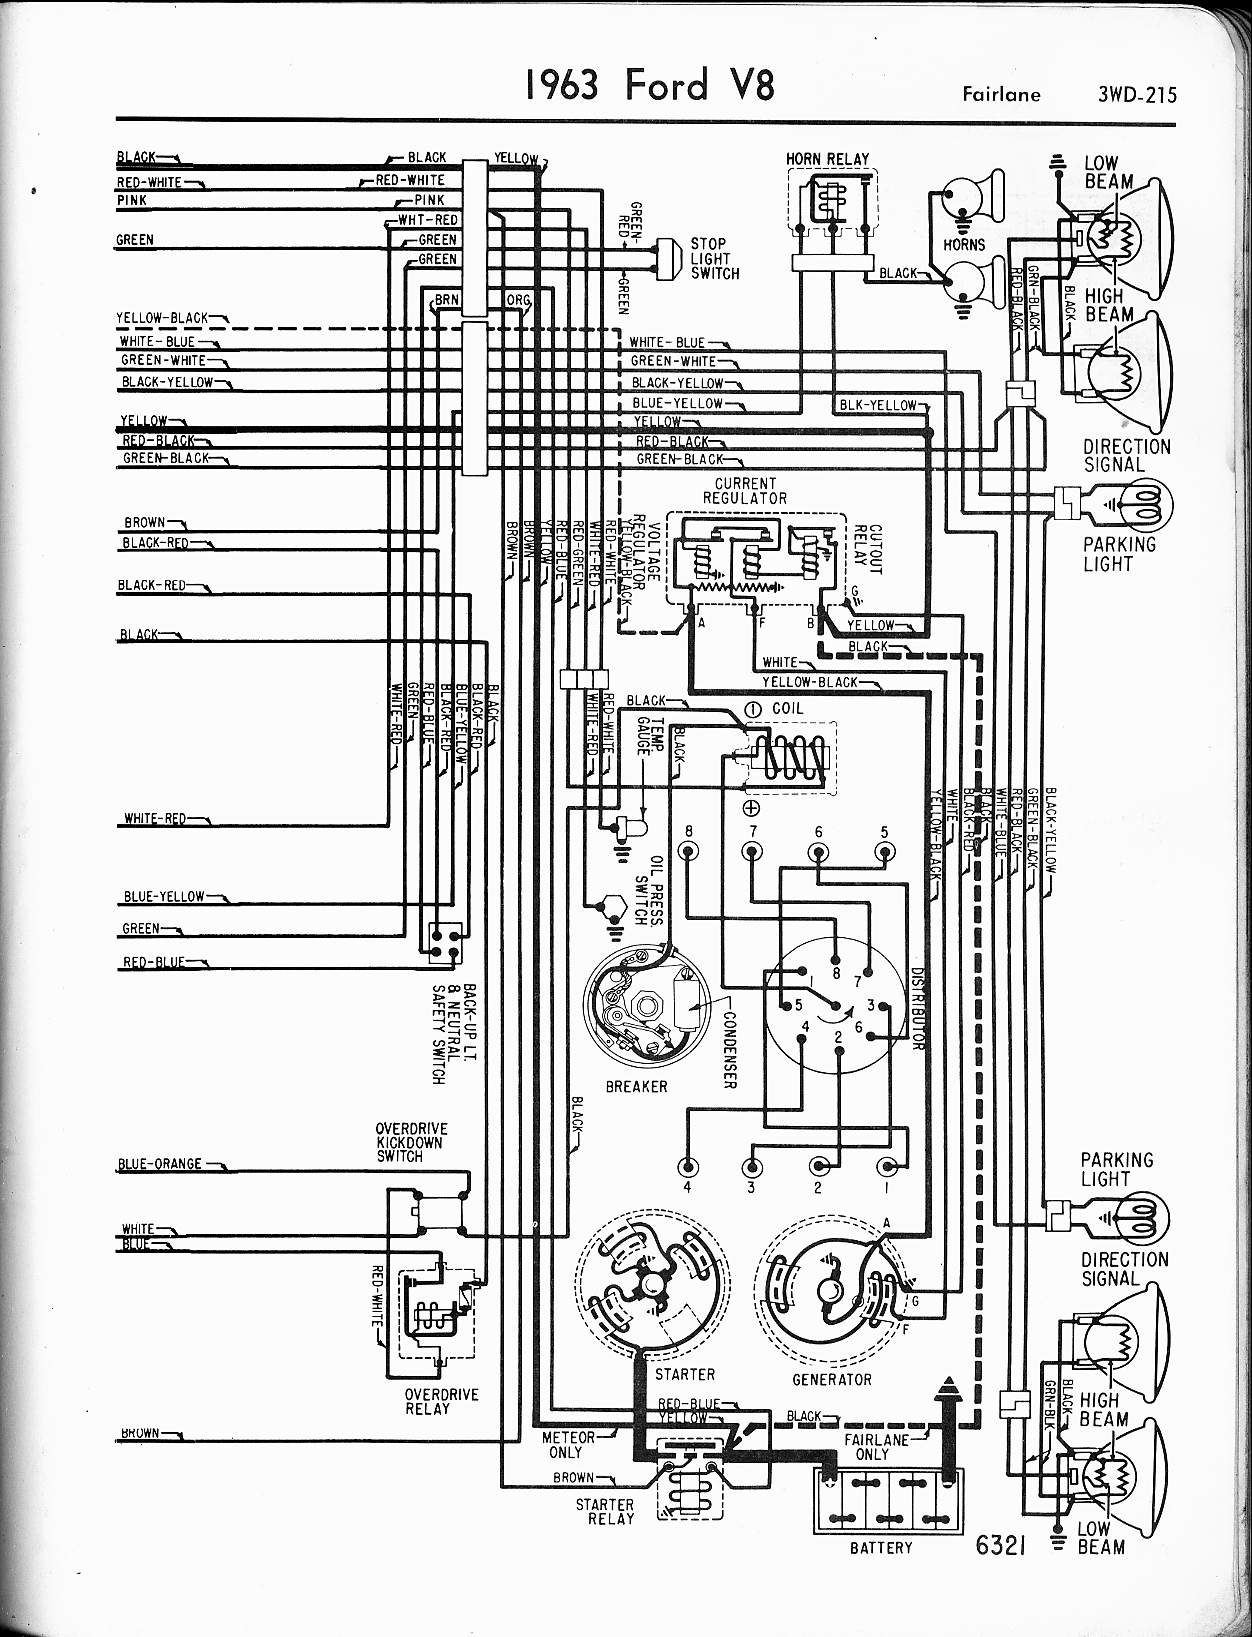 1964 ford falcon ignition switch wiring 1967 fairlane wiring diagram free. 1967. free printable ... #11